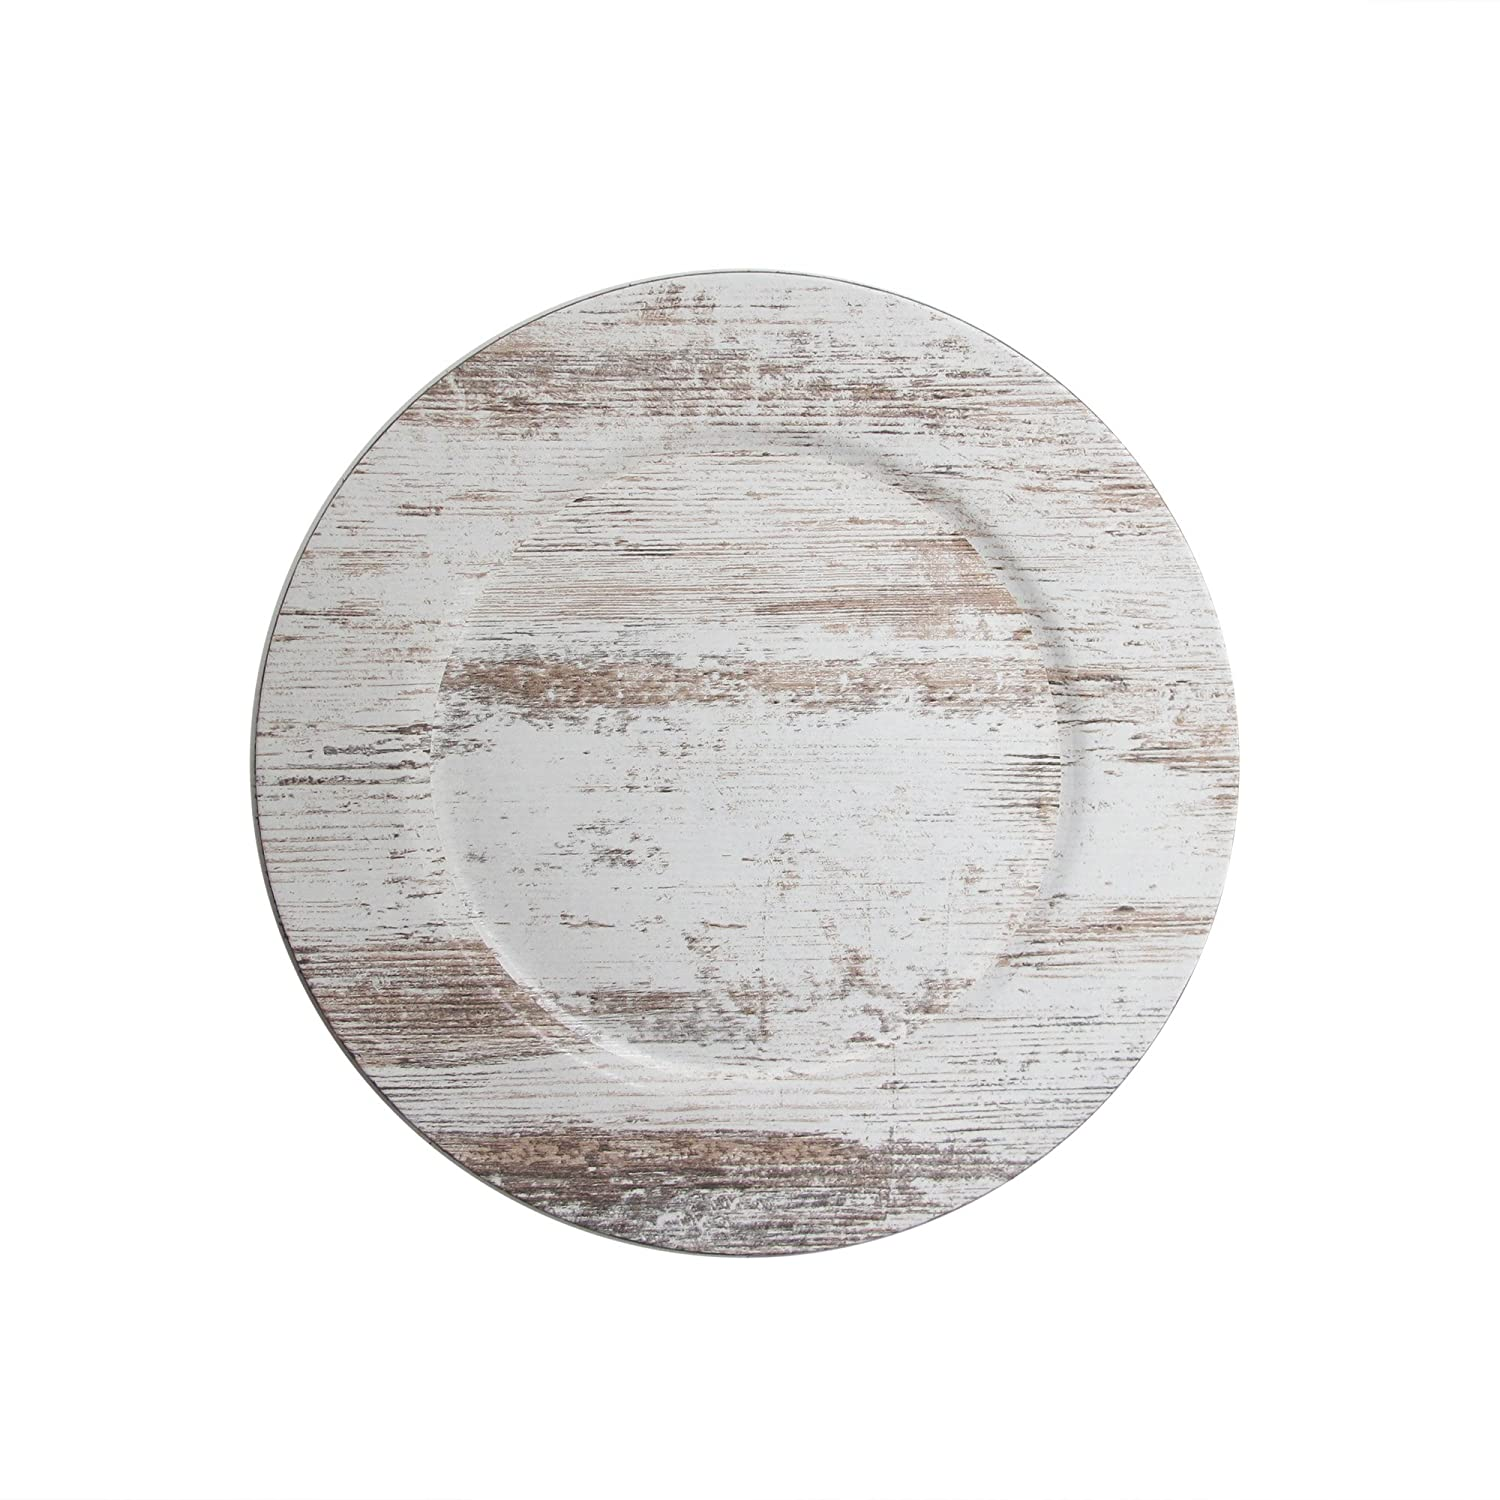 ChargeIt by Jay1270506-4 Birch WoodSet of 4 Round Melamine Charger Plates13x13